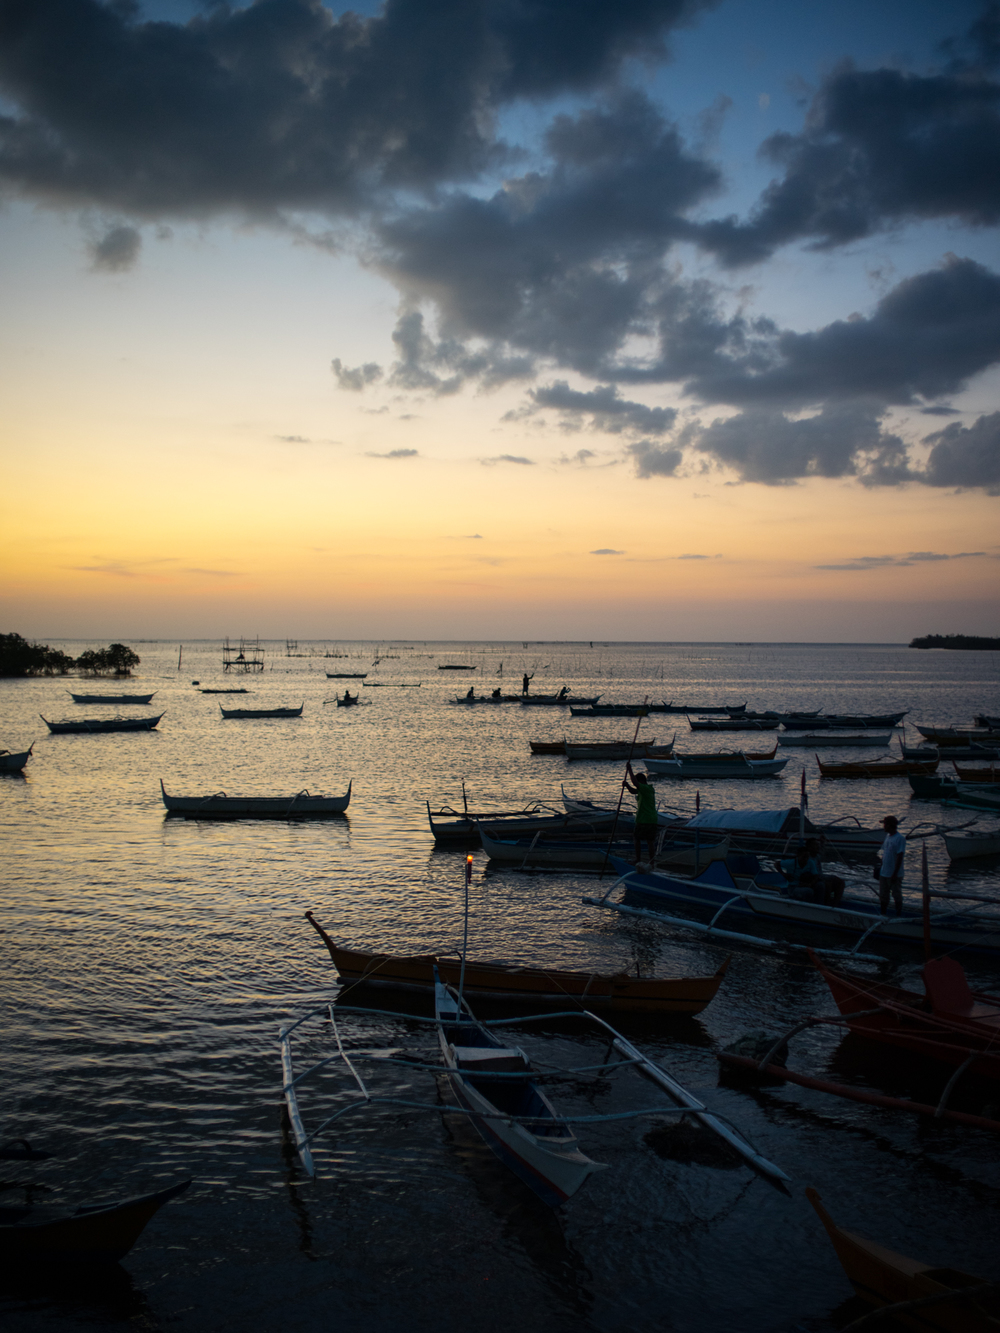 Filipino fishing boat dock at sunset